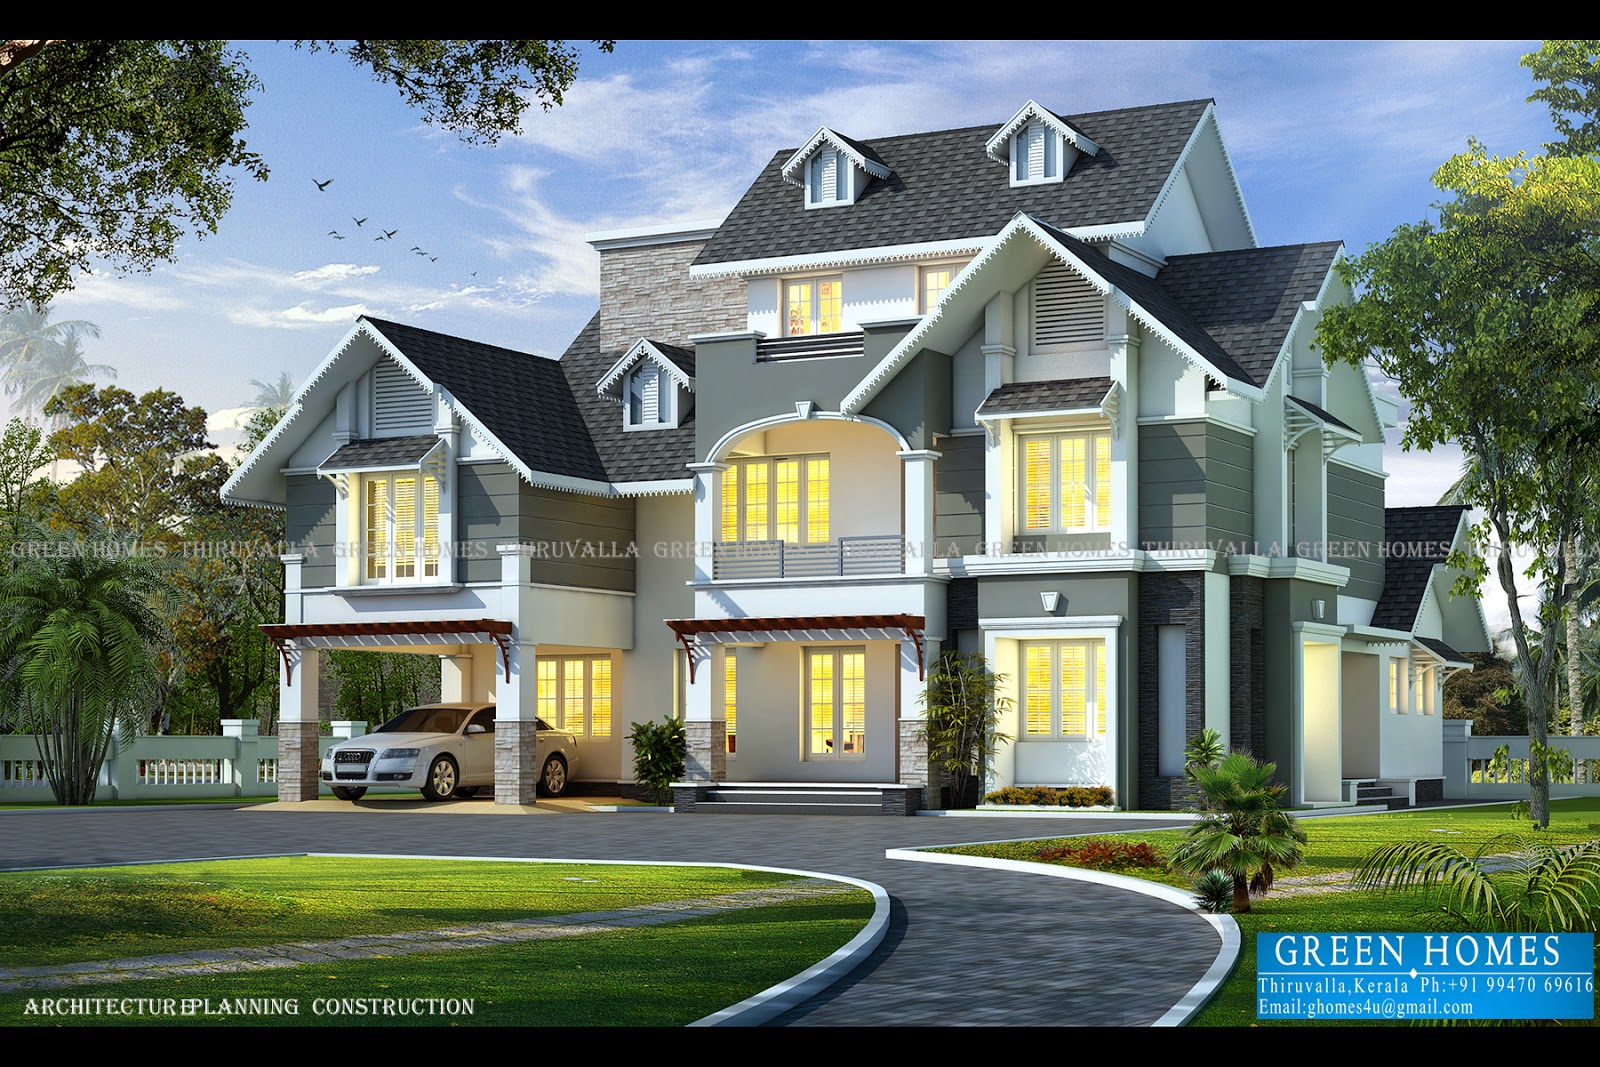 Green homes awesome european style house in 3650 sq feet for European style house